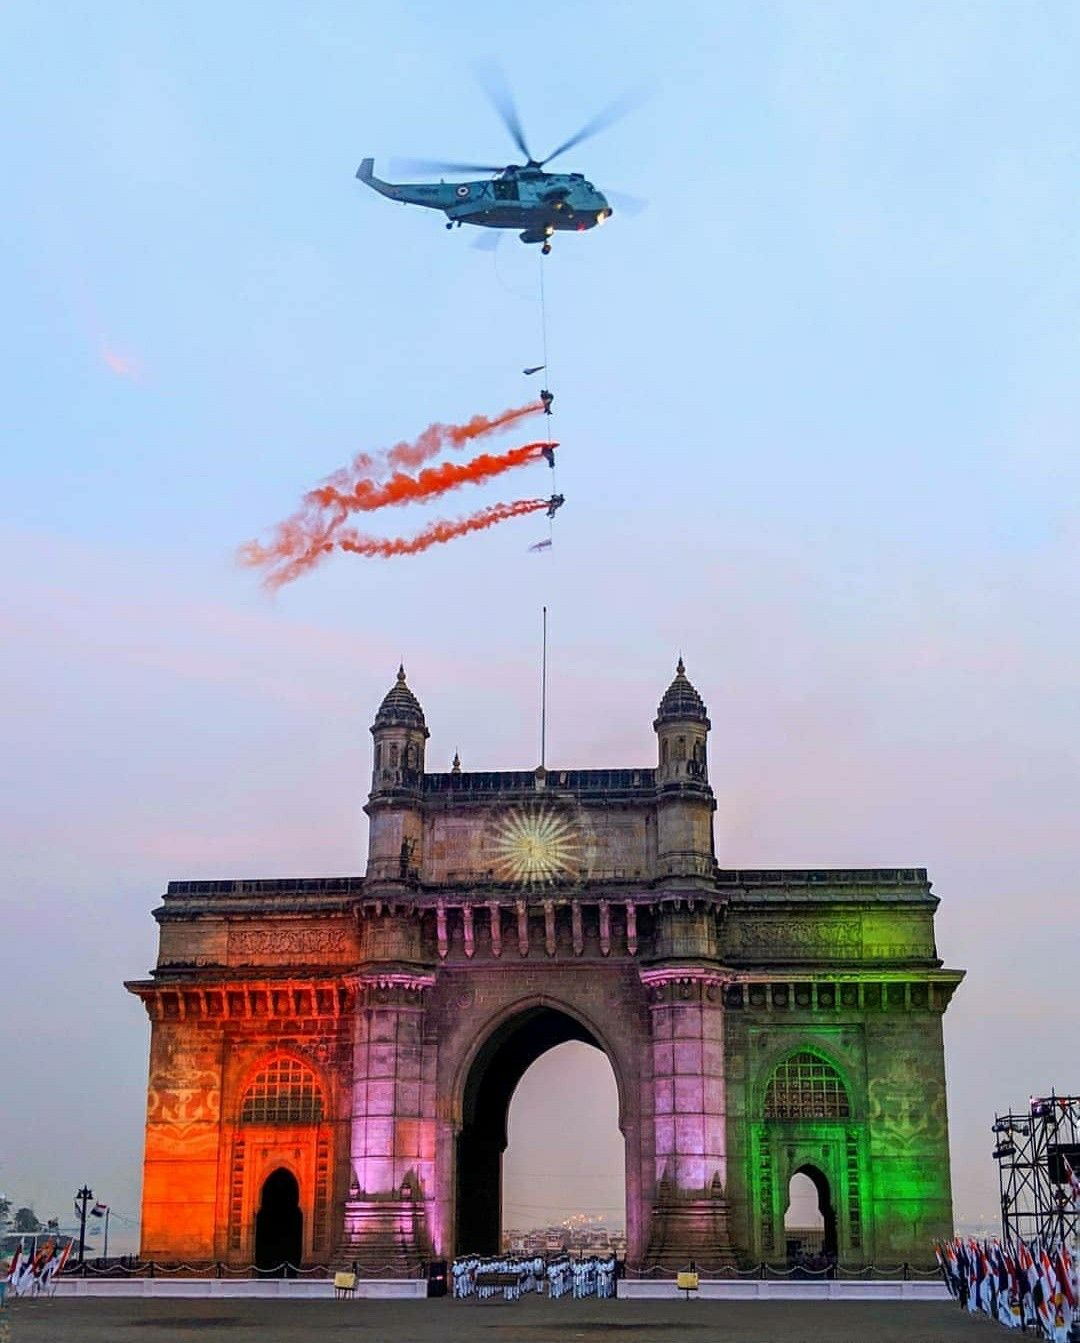 Pin By Deepak Adhangale On Mumbai With Images Places To Visit Travel Indian Photography